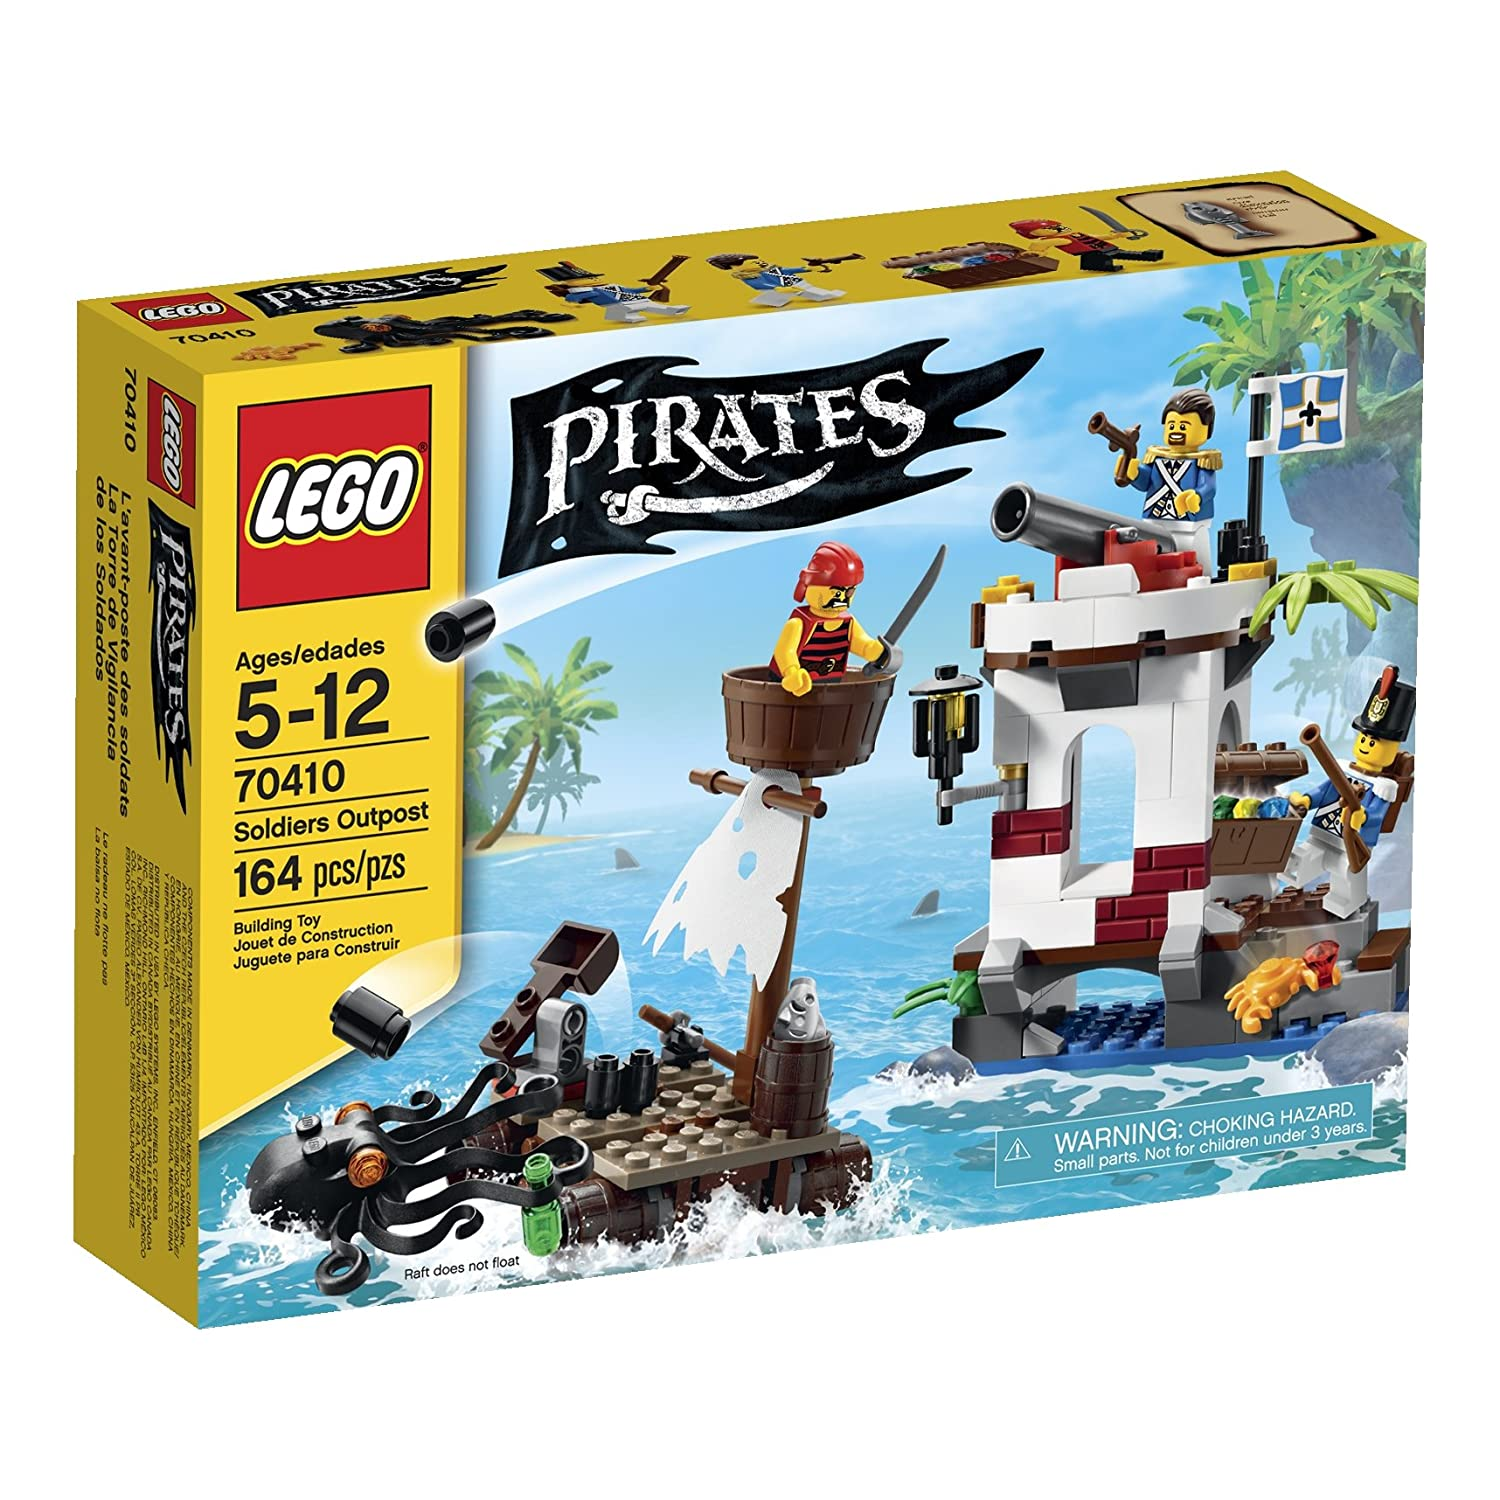 alto descuento LEGO Pirates Soldiers Outpost Outpost Outpost by LEGO  Web oficial